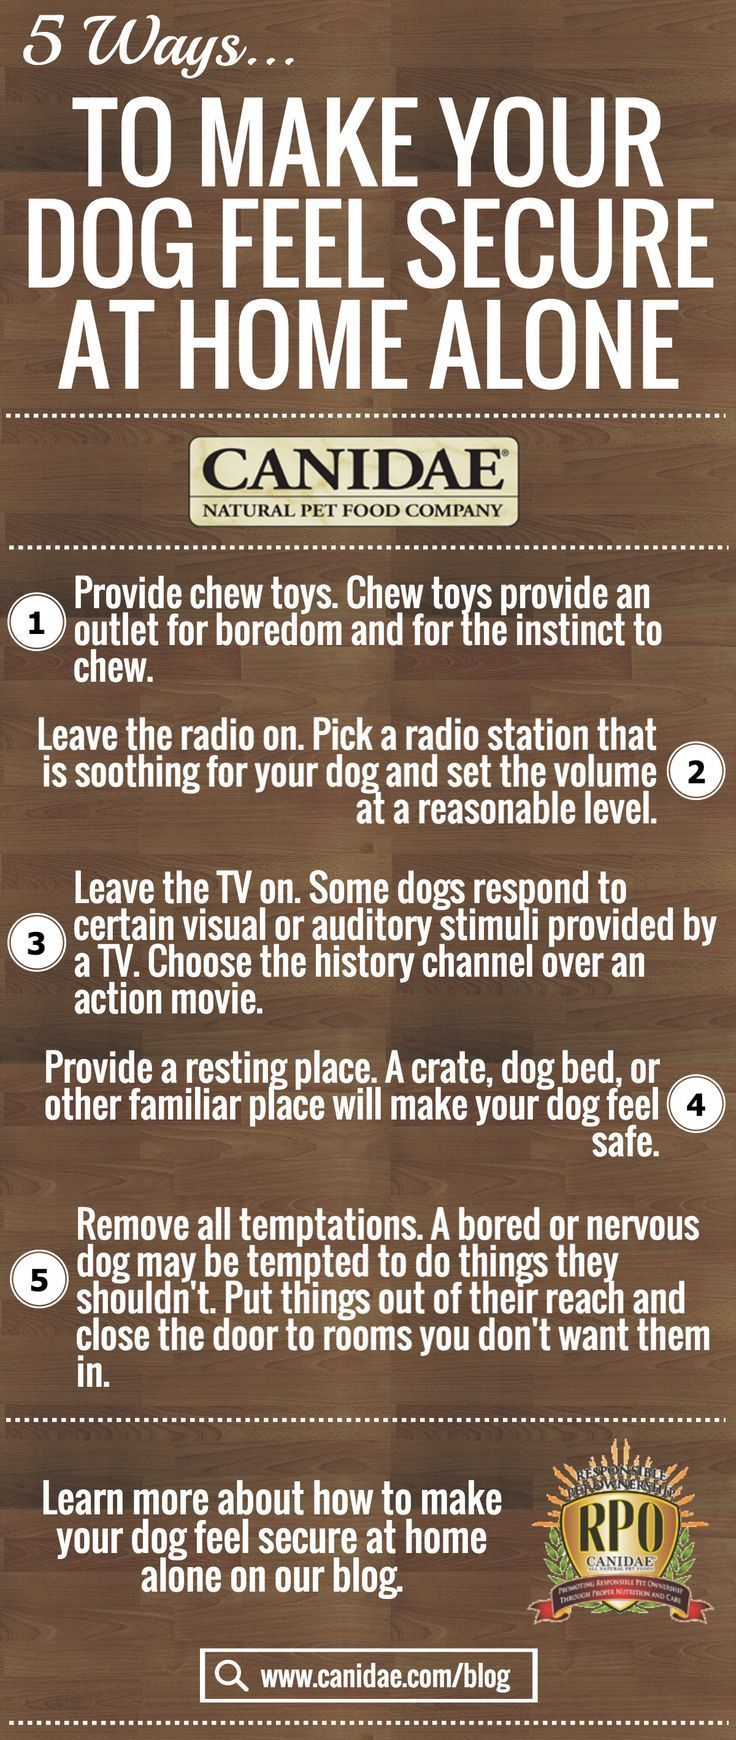 Ways To Make Your Dog Feel Secure At Home Alone   CANIDAE Blog